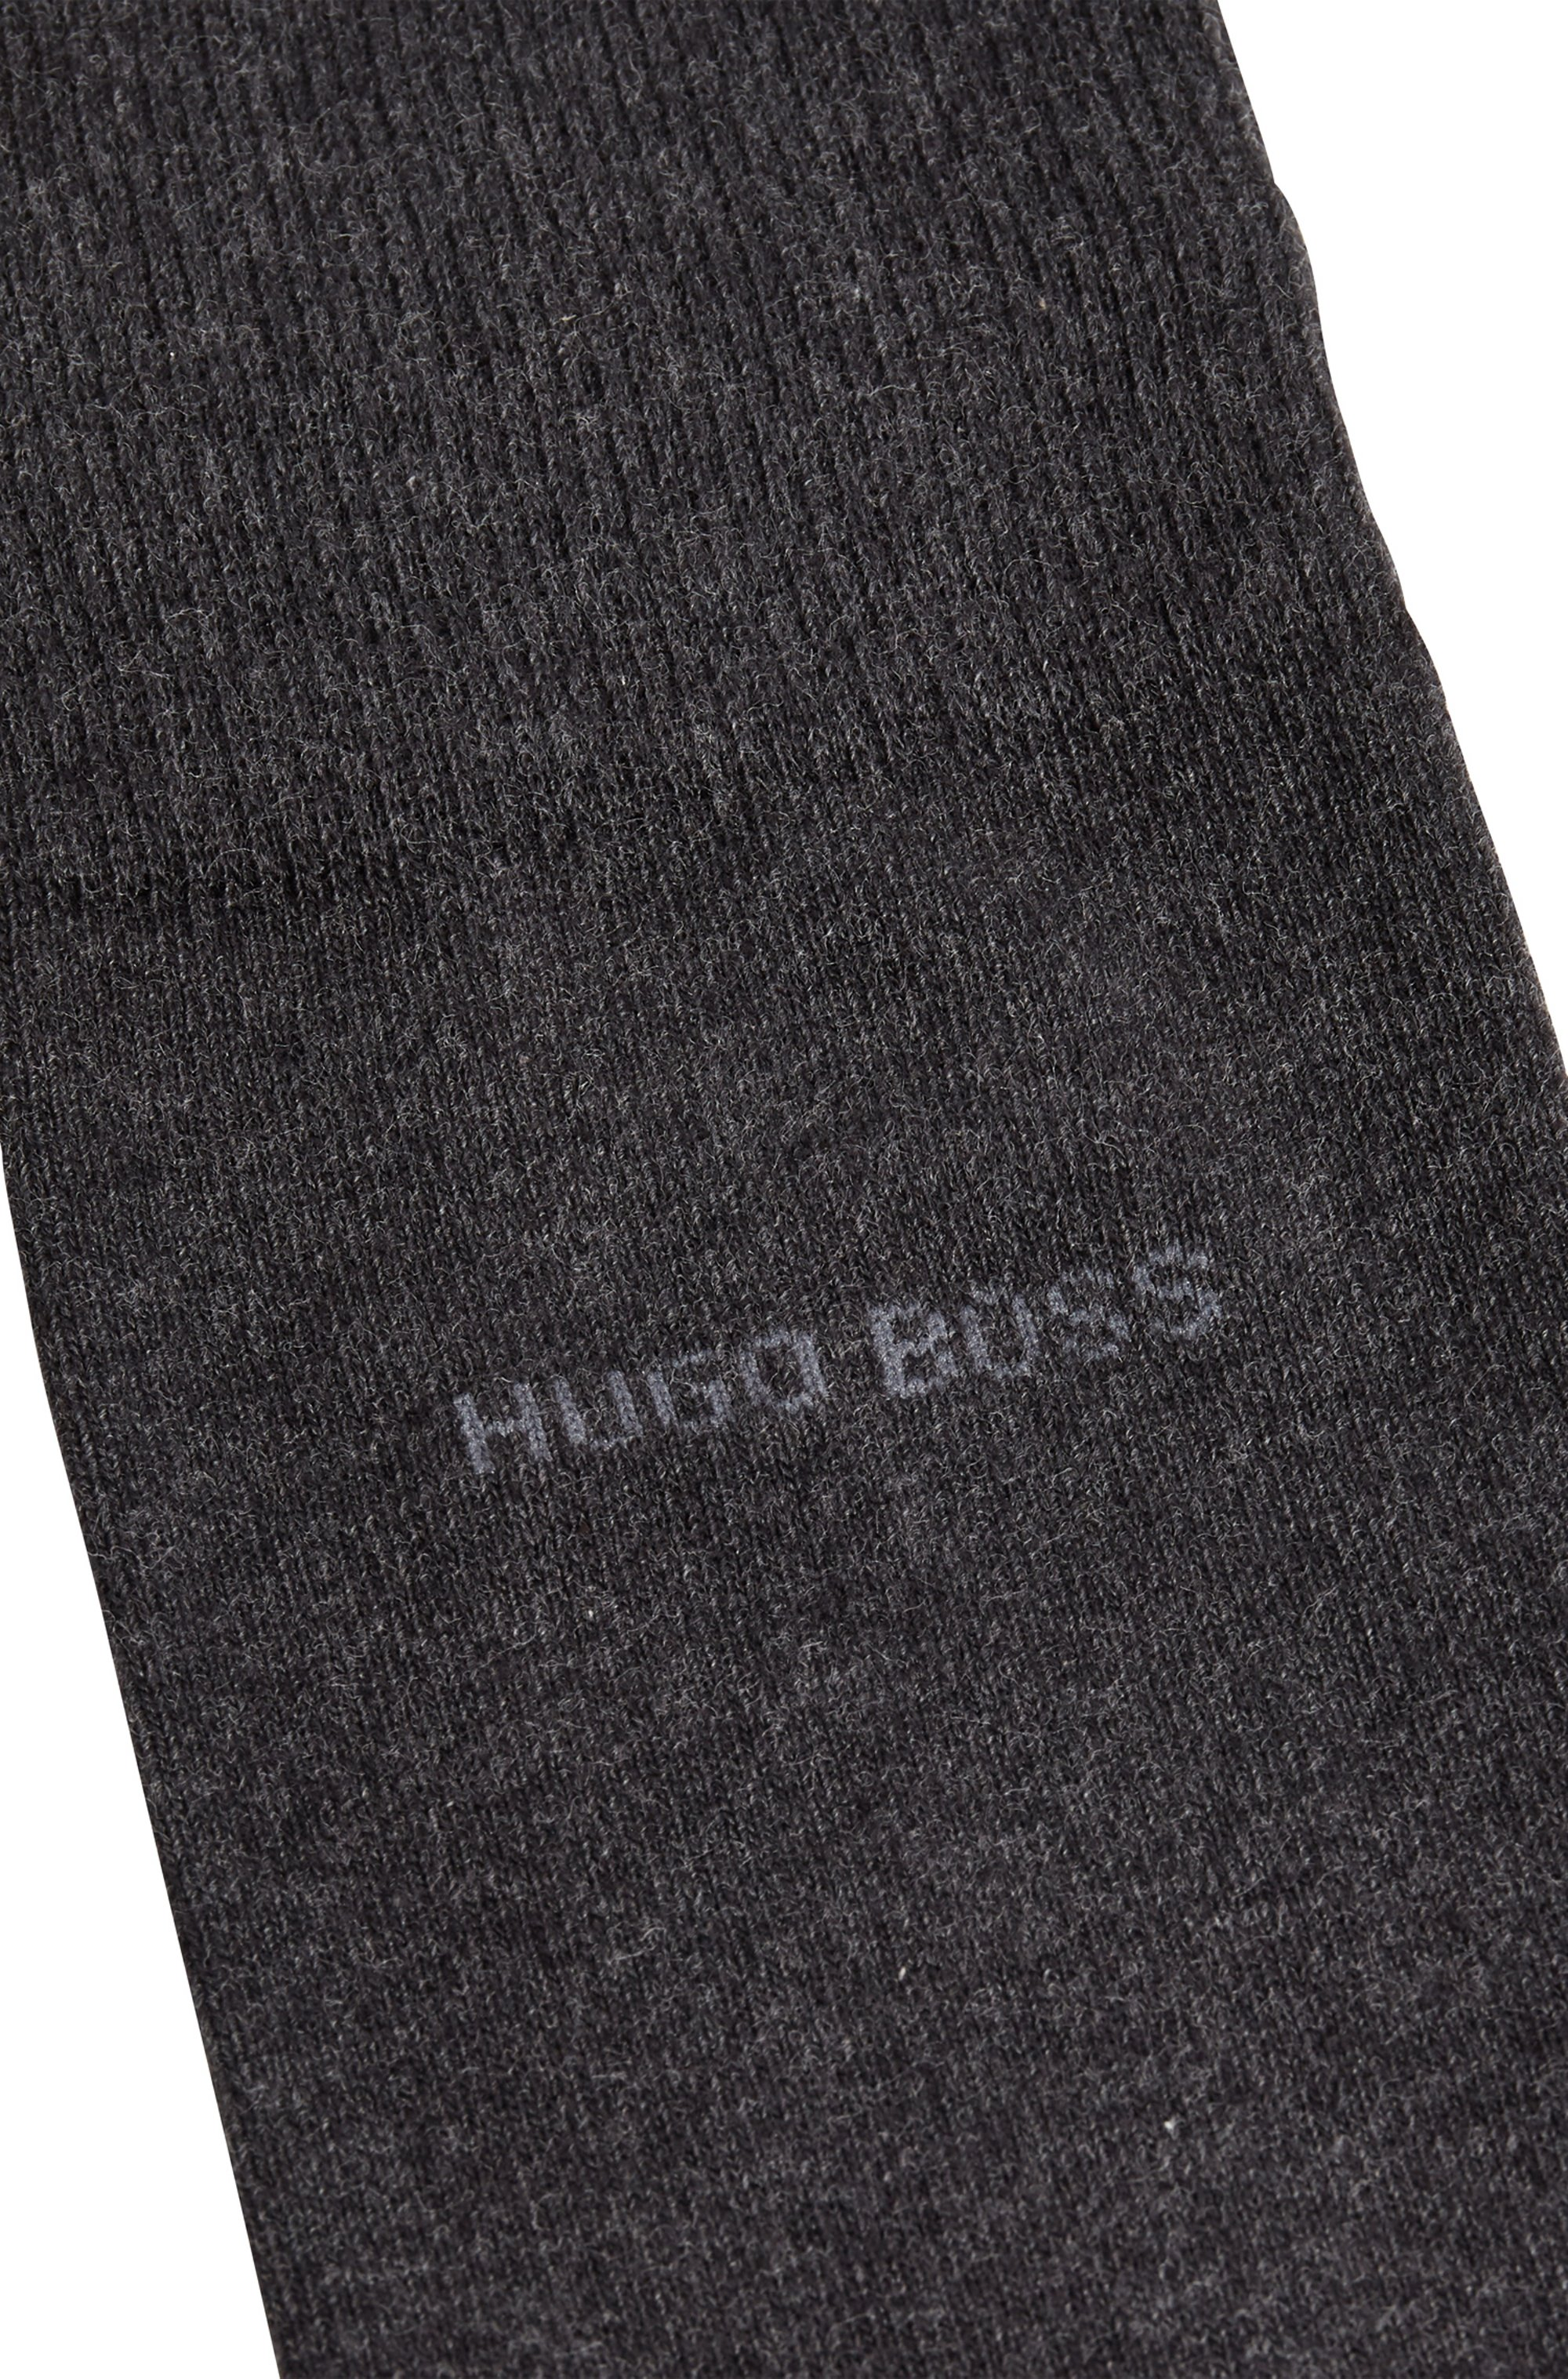 Two-pack of regular-length socks in a cotton blend